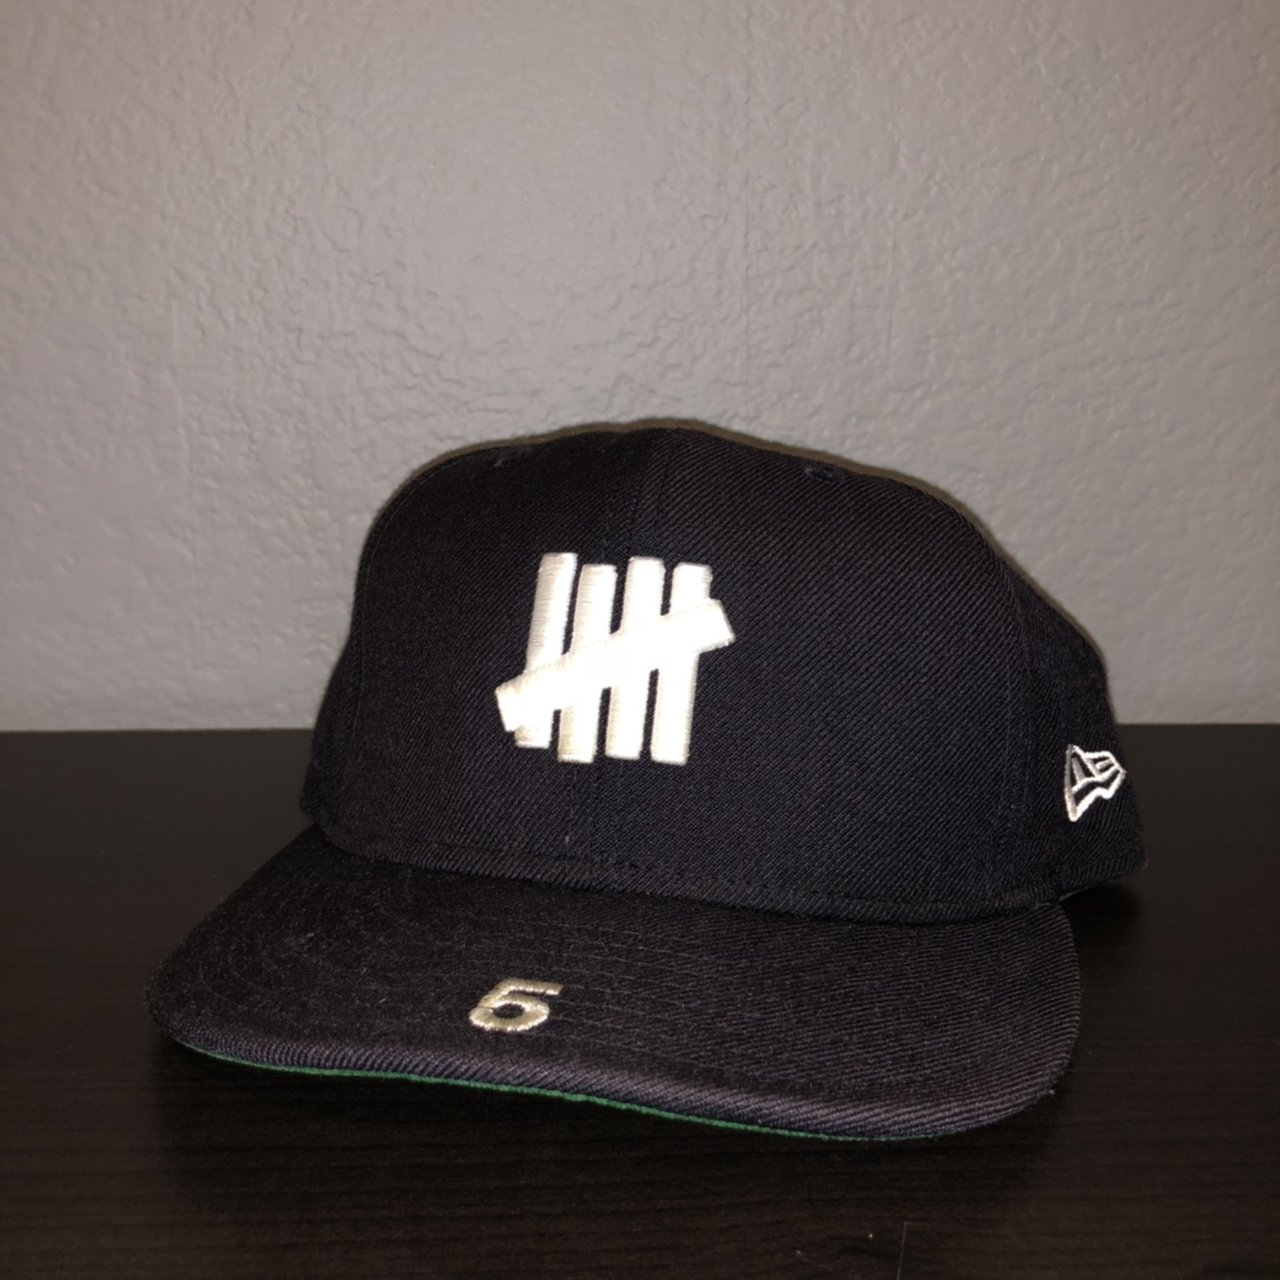 Undefeated new era fitted cap 71 4 good condition.  newera - Depop 332b90b0c05